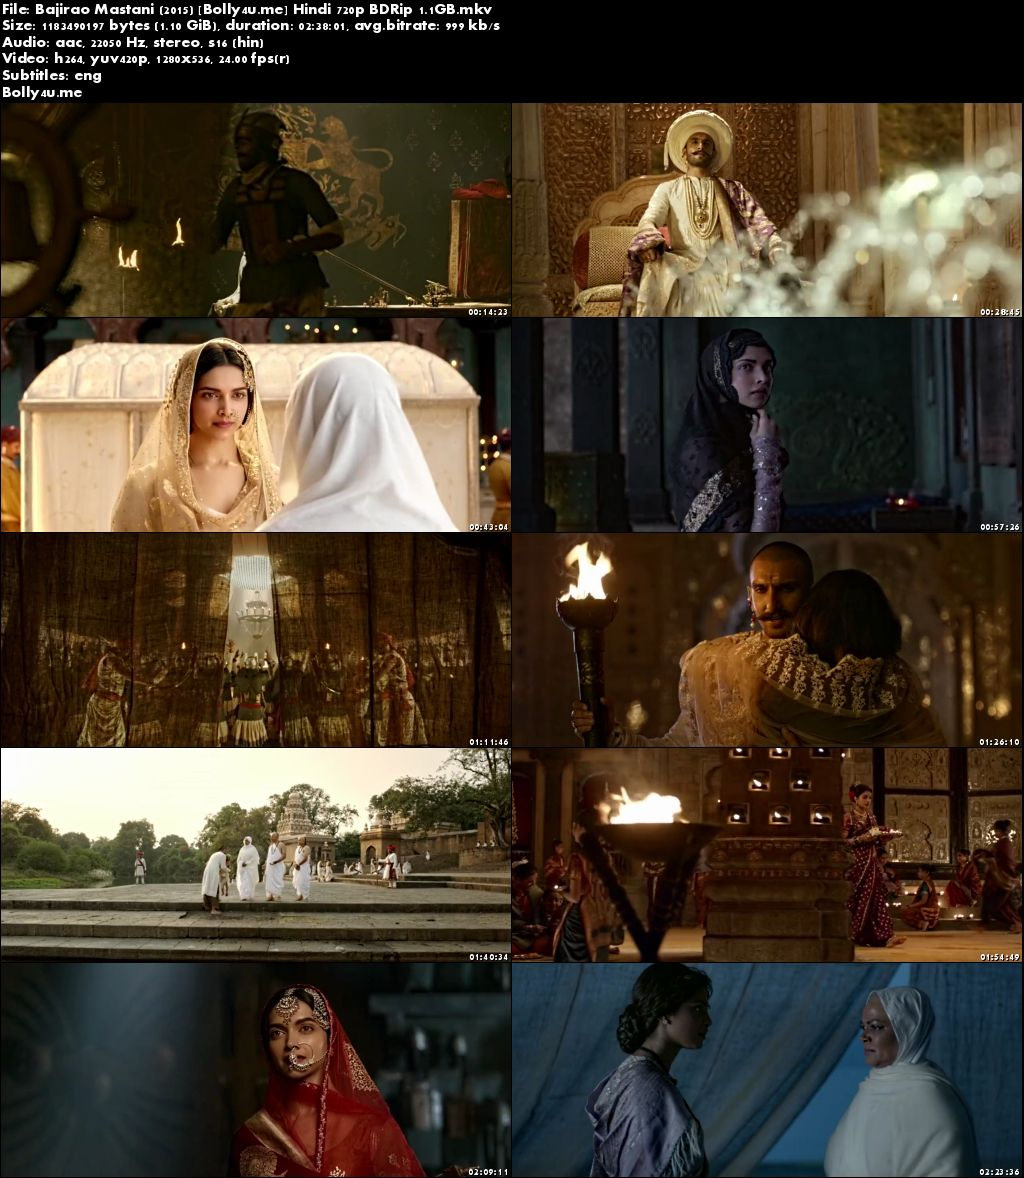 Bajirao Mastani 2015 BDRip 450MB Full Hindi Movie Download 480p